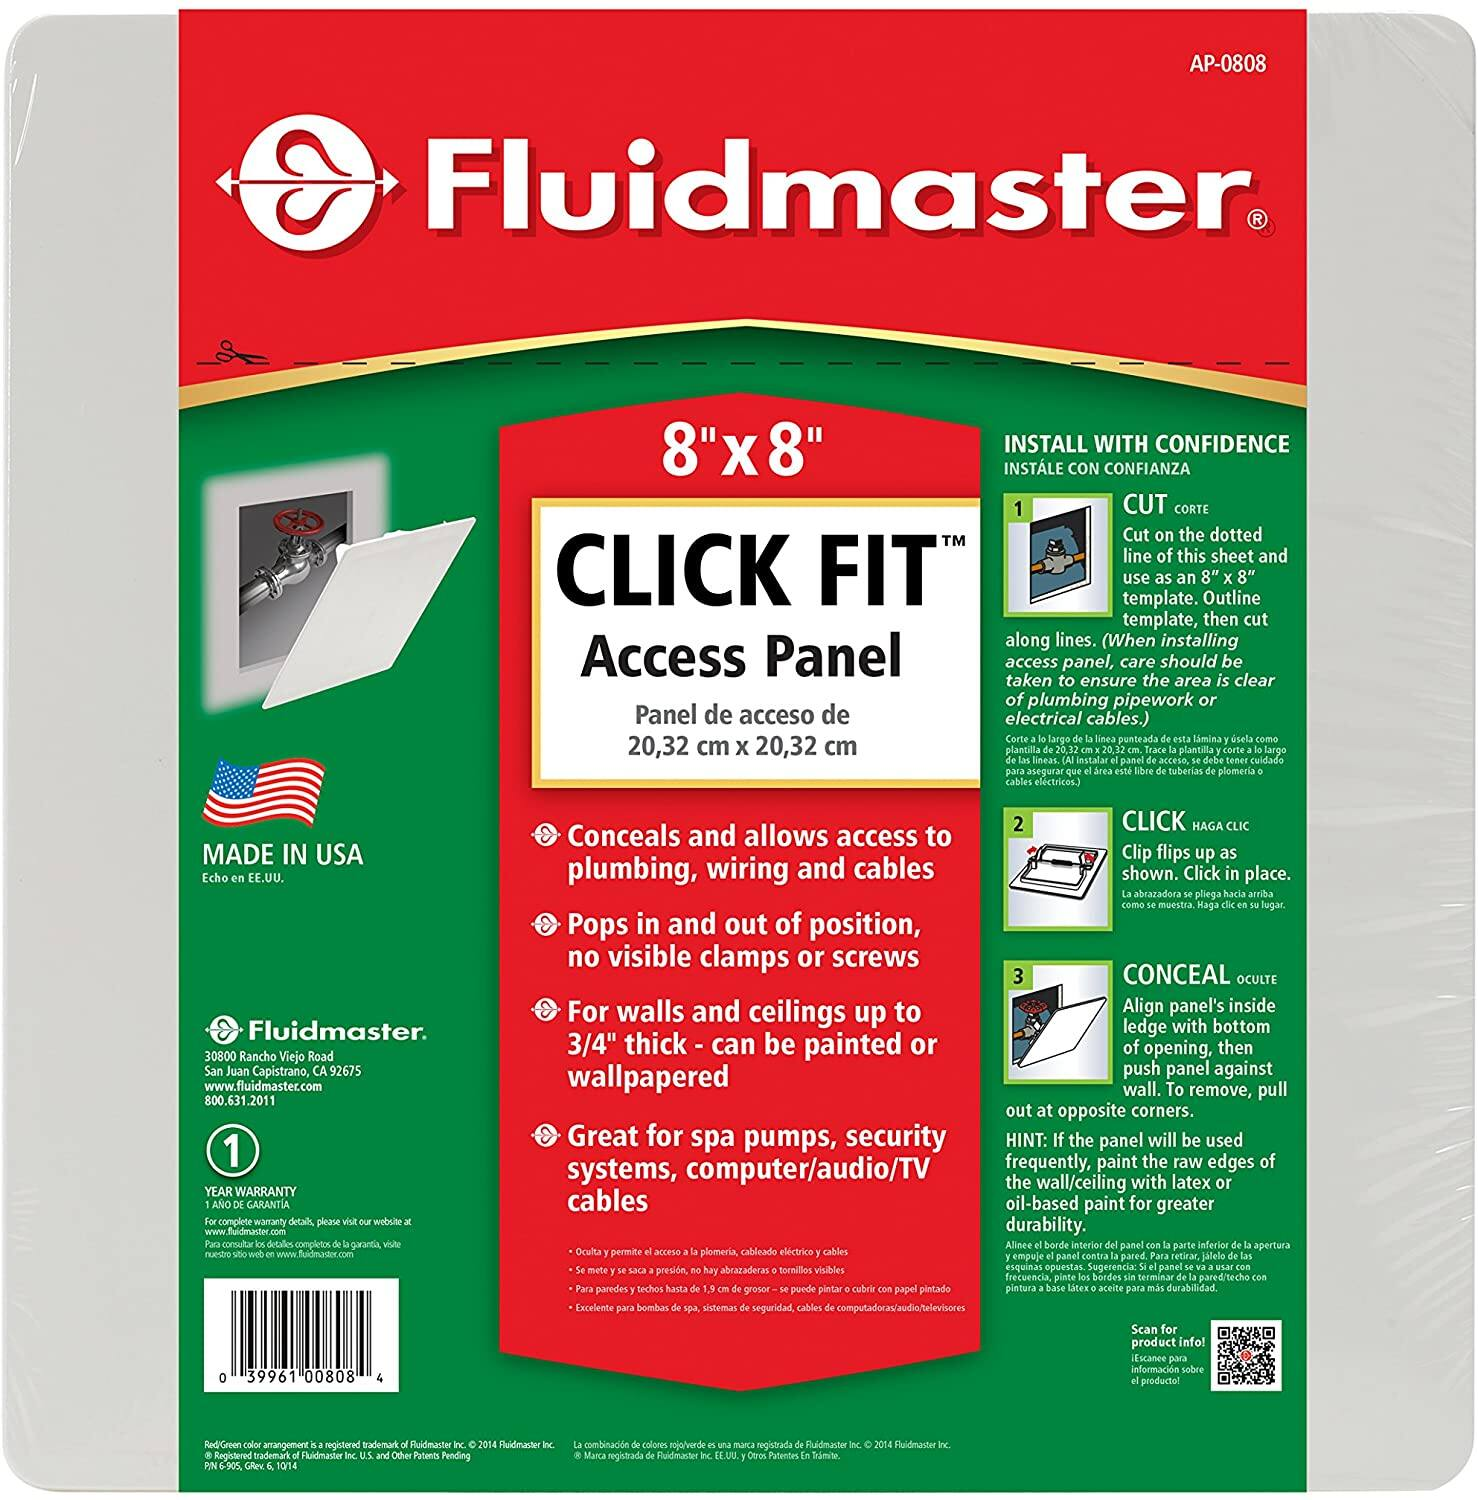 "Fluidmaster Click Fit Access Panel 8"" x8"" $1.95"